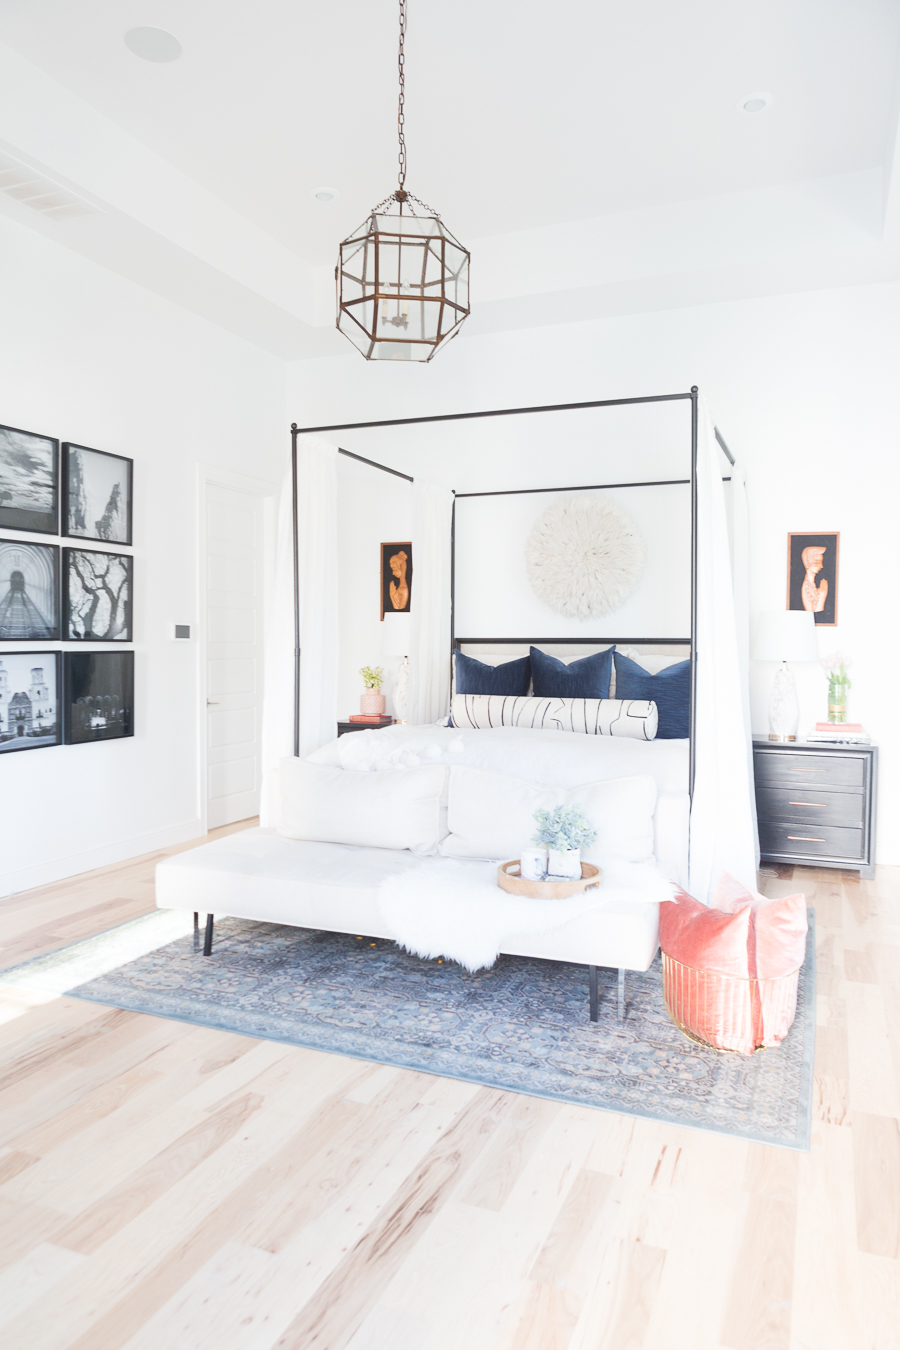 The Ultimate Guide to Affordable Canopy Beds master bedroom end of bed sofa navy and black master bedroom decor black wood master bedroom night stands gallery art master bedroom black gallery frames master bedroom fiddle leaf fig tree master bedroom